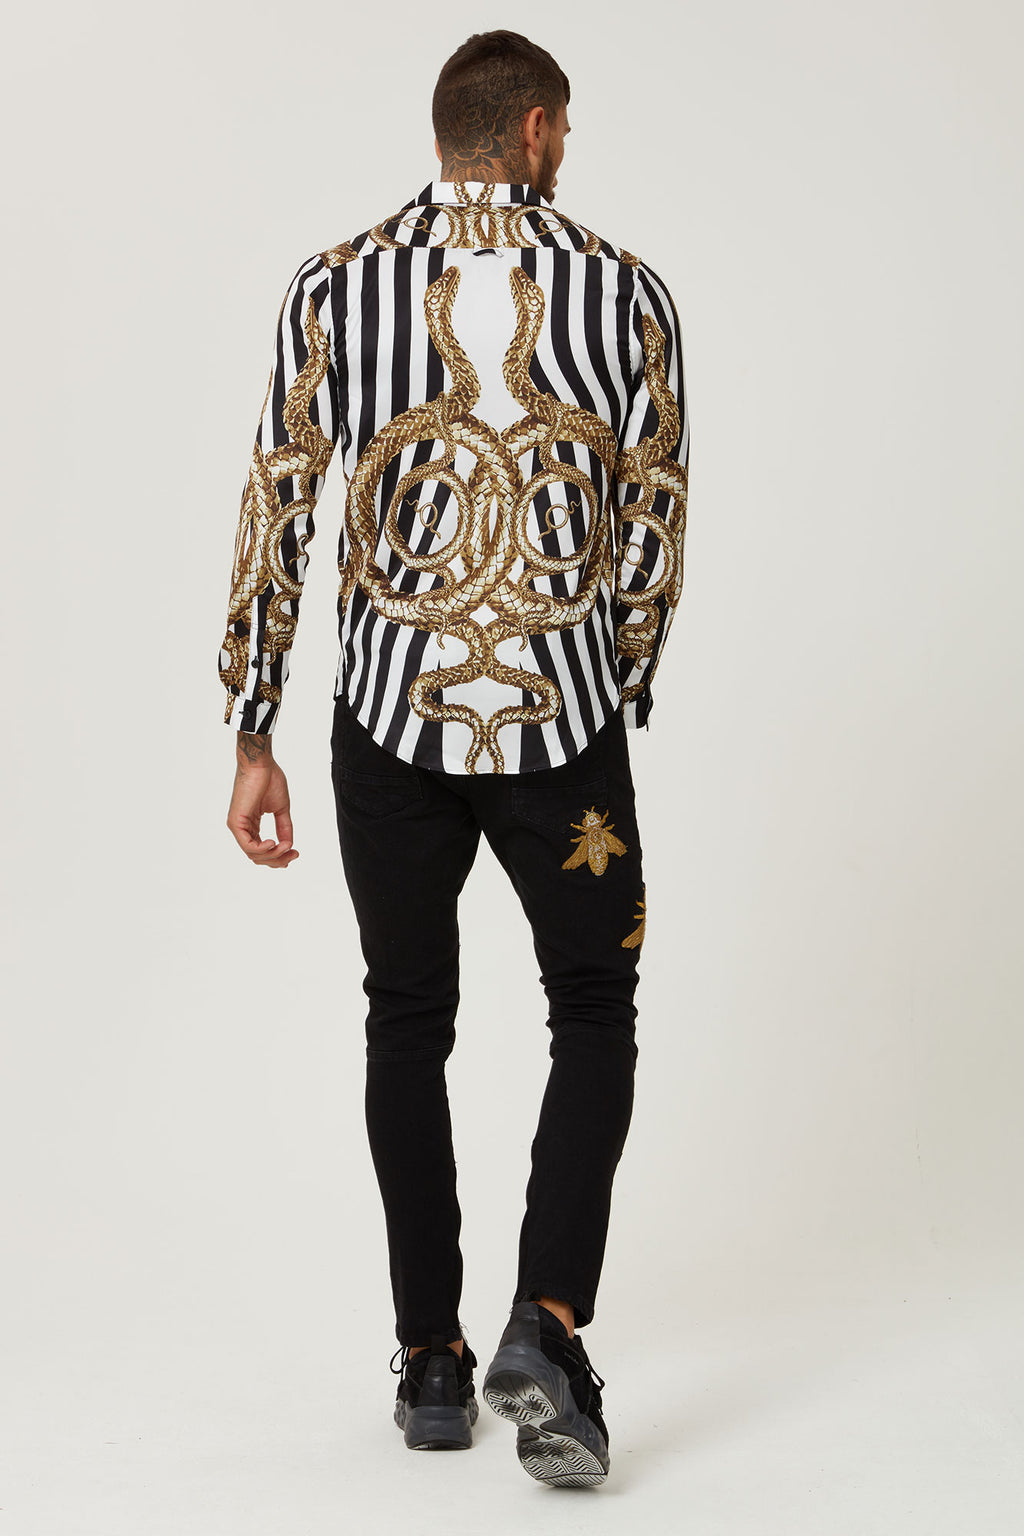 HERMANO SNAKE BLACK CUBAN LONG SLEEVE SHIRT